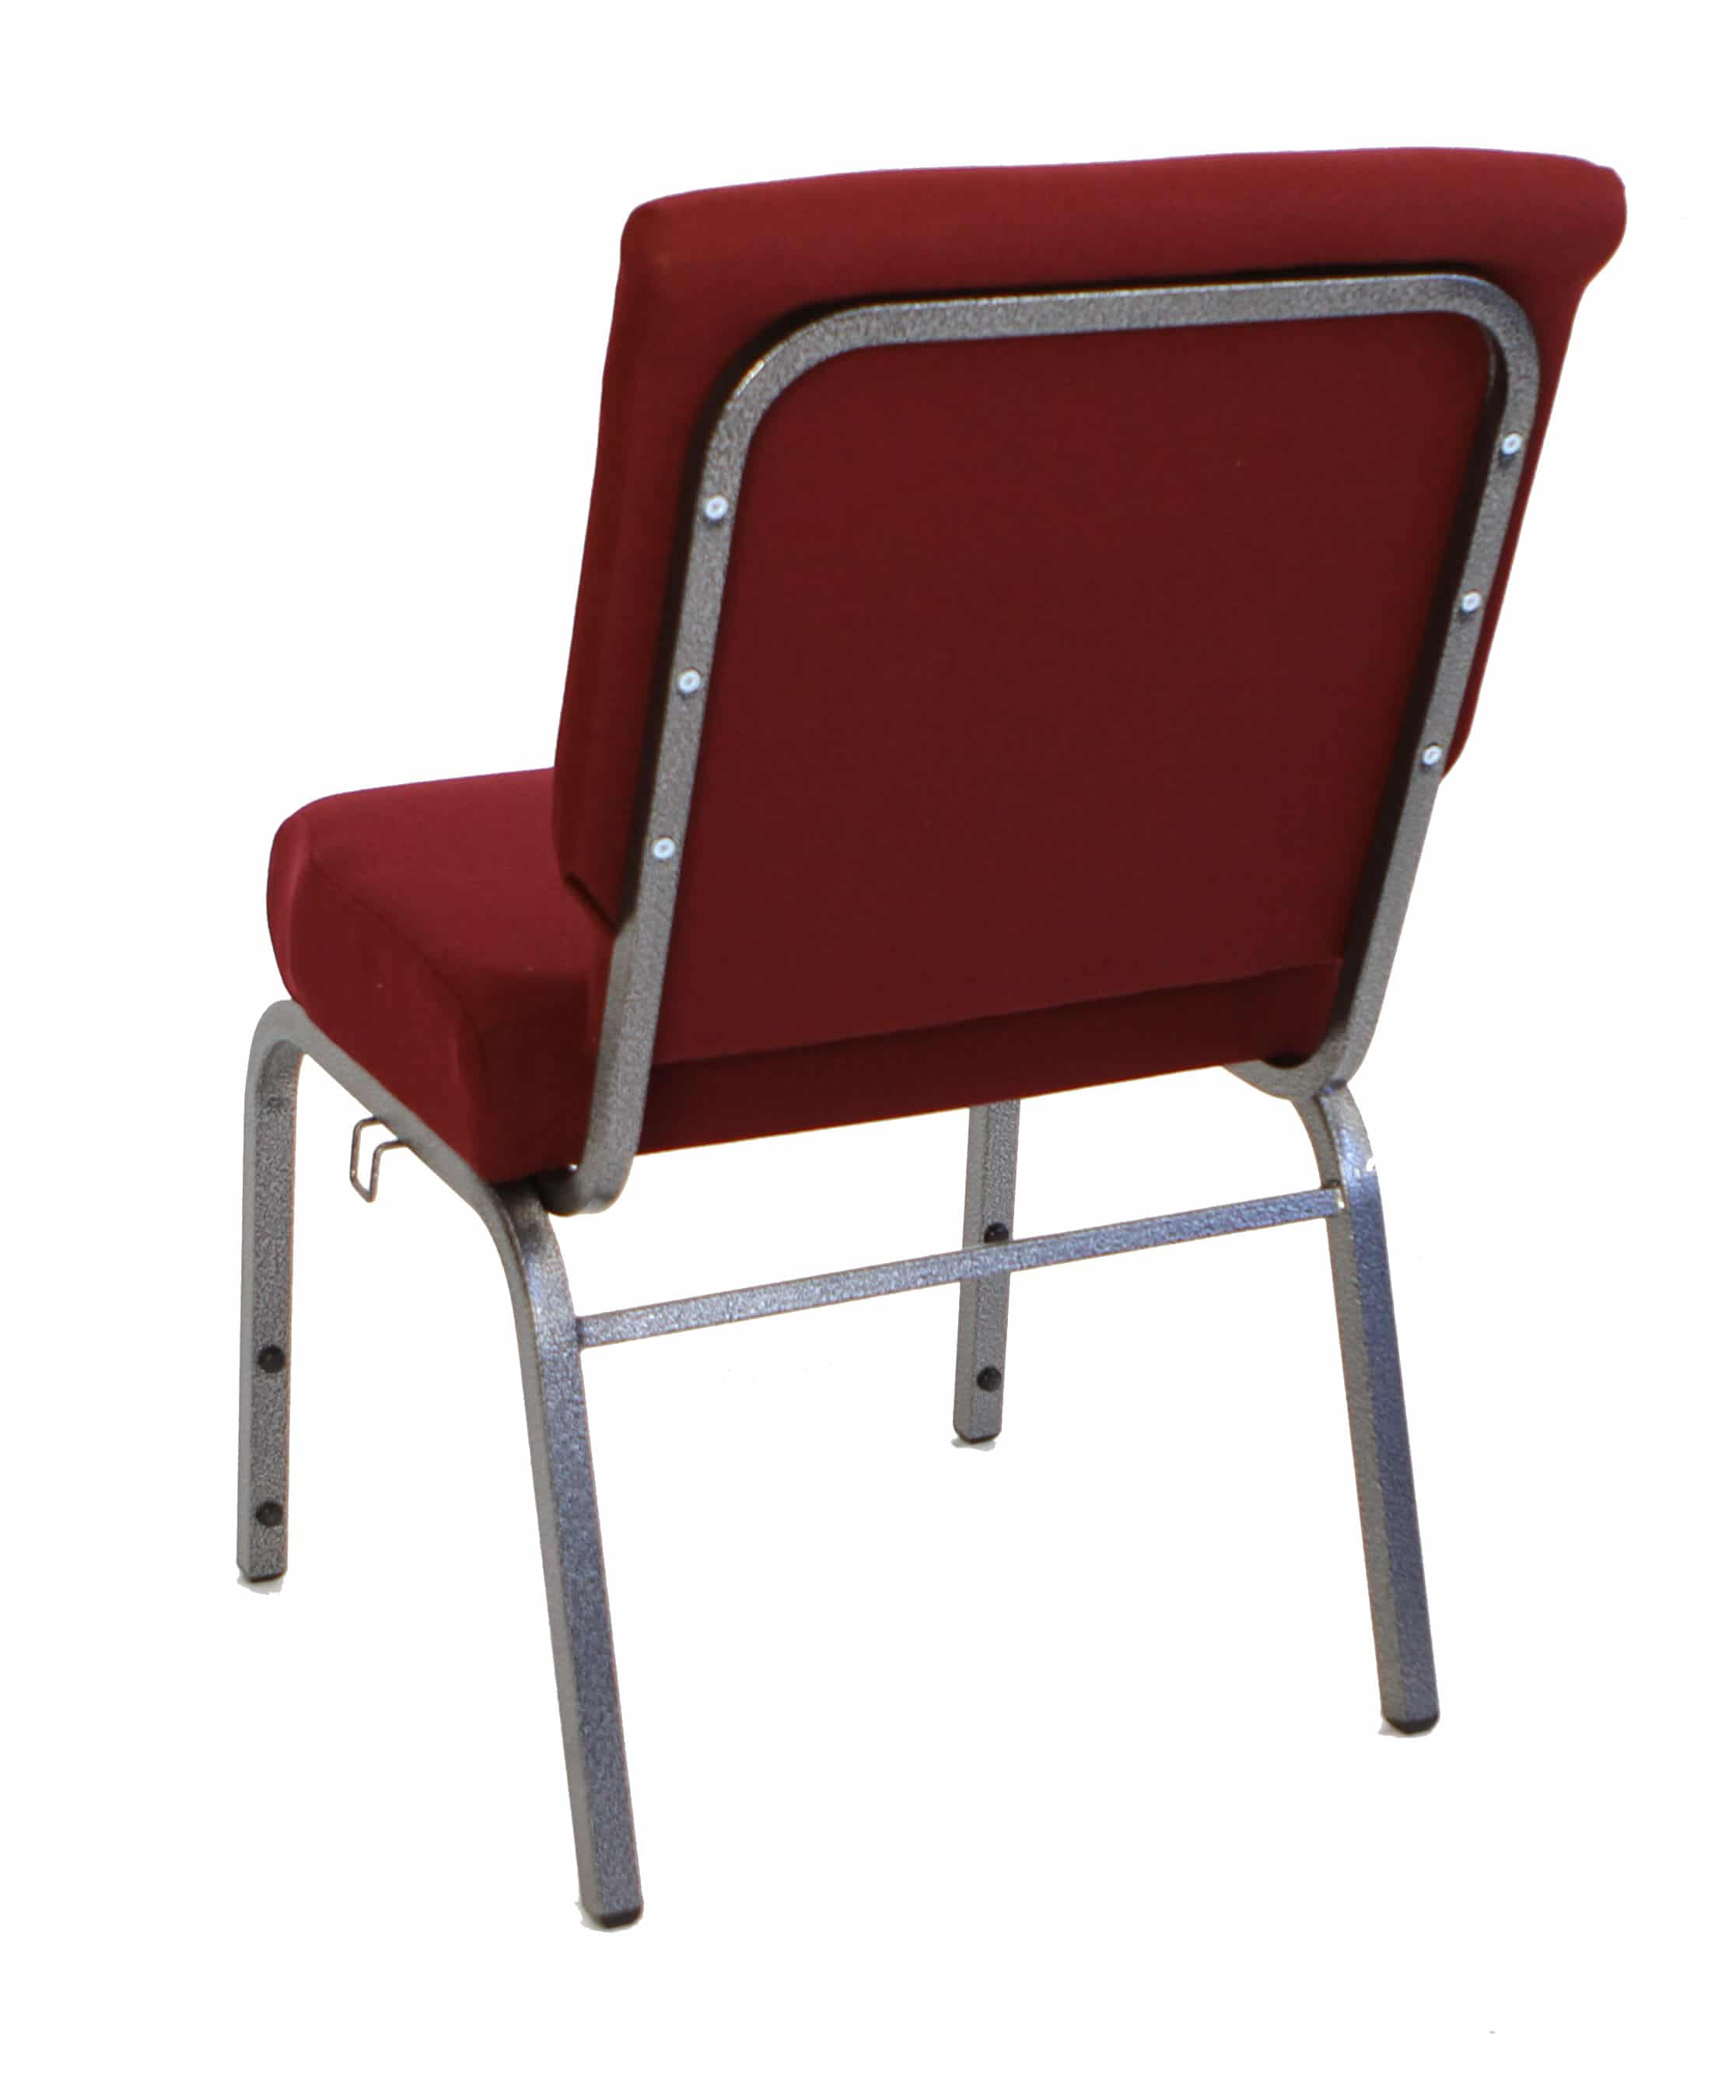 cathedral chairs student desk chair combo am cc maroon 20 inch padded church the furniture